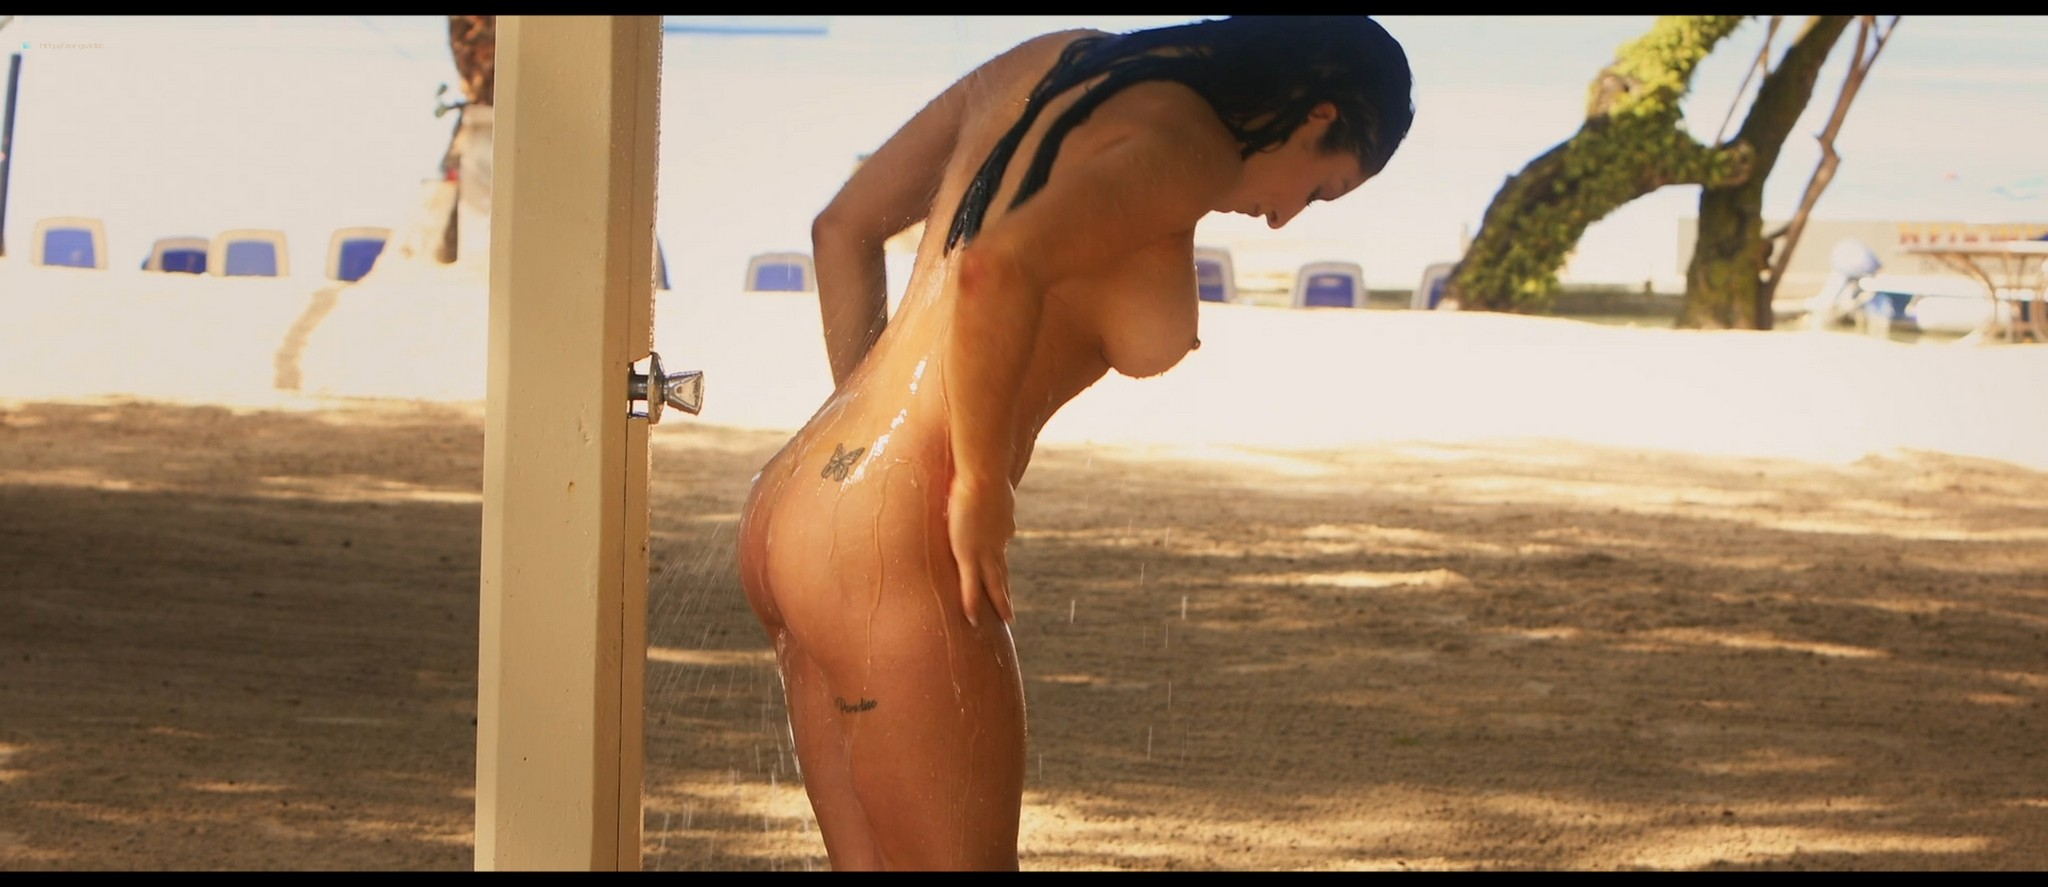 Olivia Culpo hot Adelaide Kane sexy others topless and hot - The Swing of Things (2020) HD 1080p Web (12)